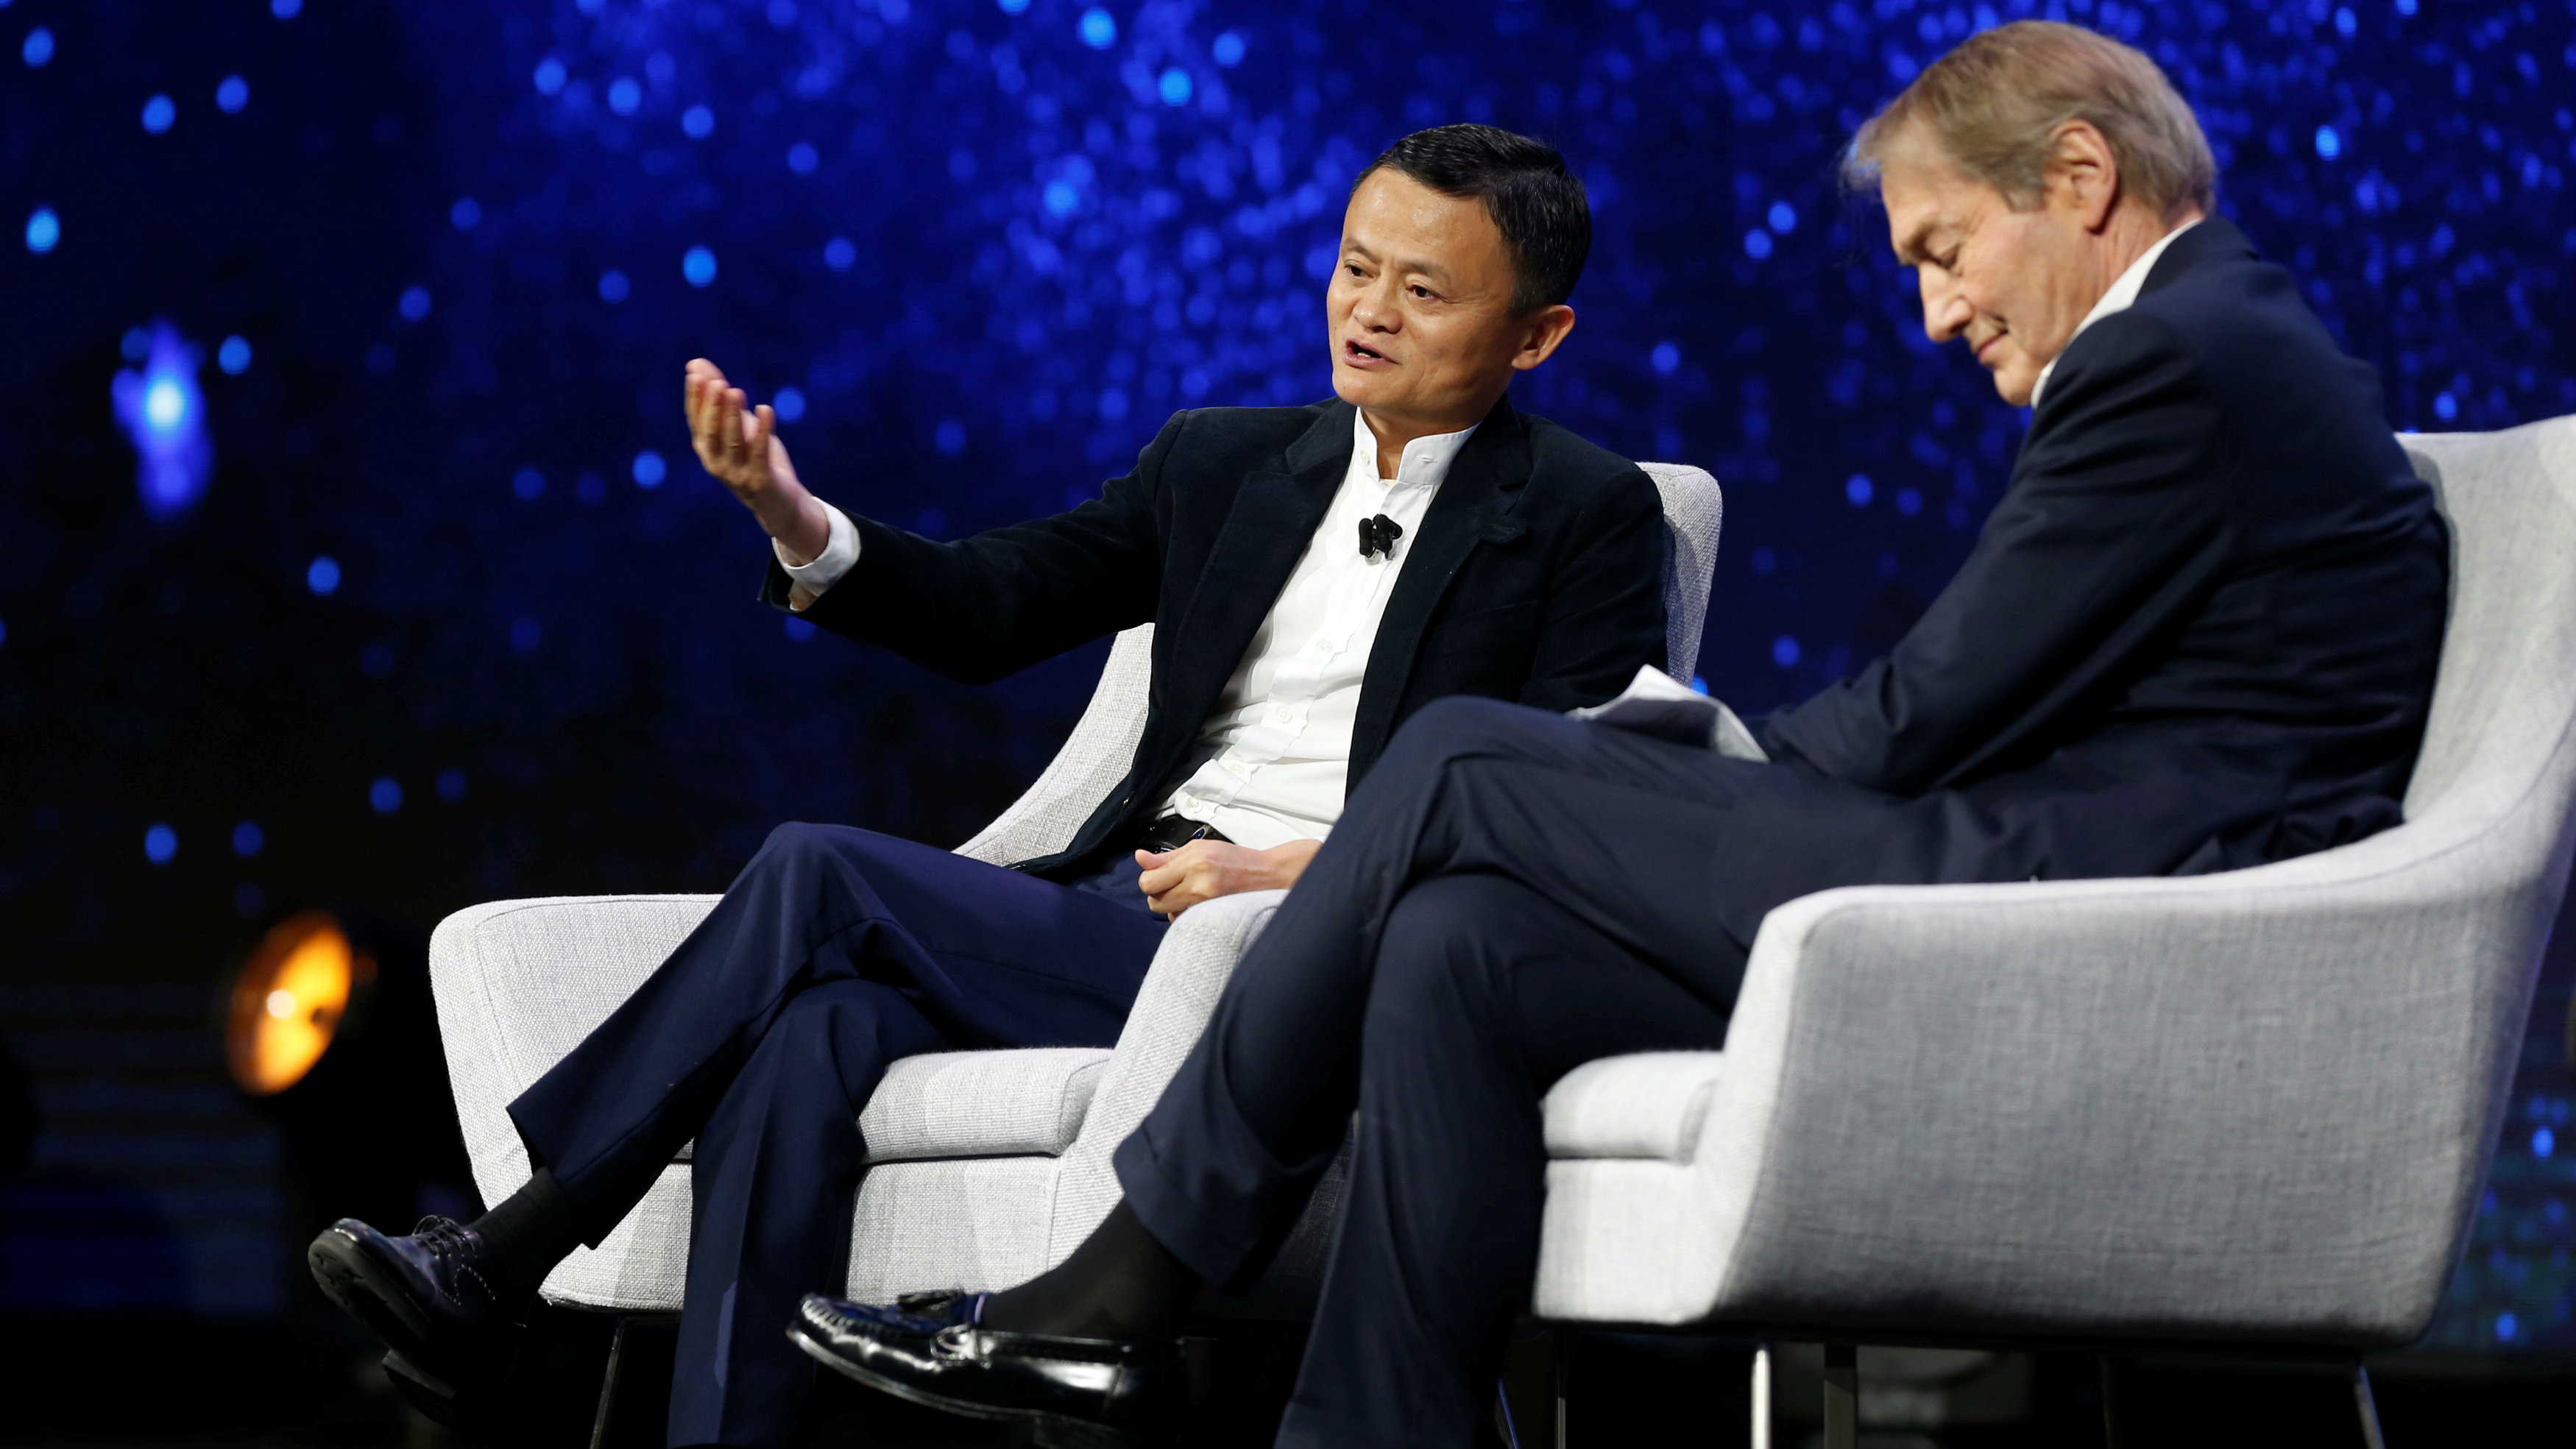 Jack Ma, Founder and Executive Chairman, Alibaba Groups, talks with American television host Charlie Rose (R ) during the inaugural Gateway 17 event at Cobo Center in Detroit, Michigan, U.S., June 20, 2017.